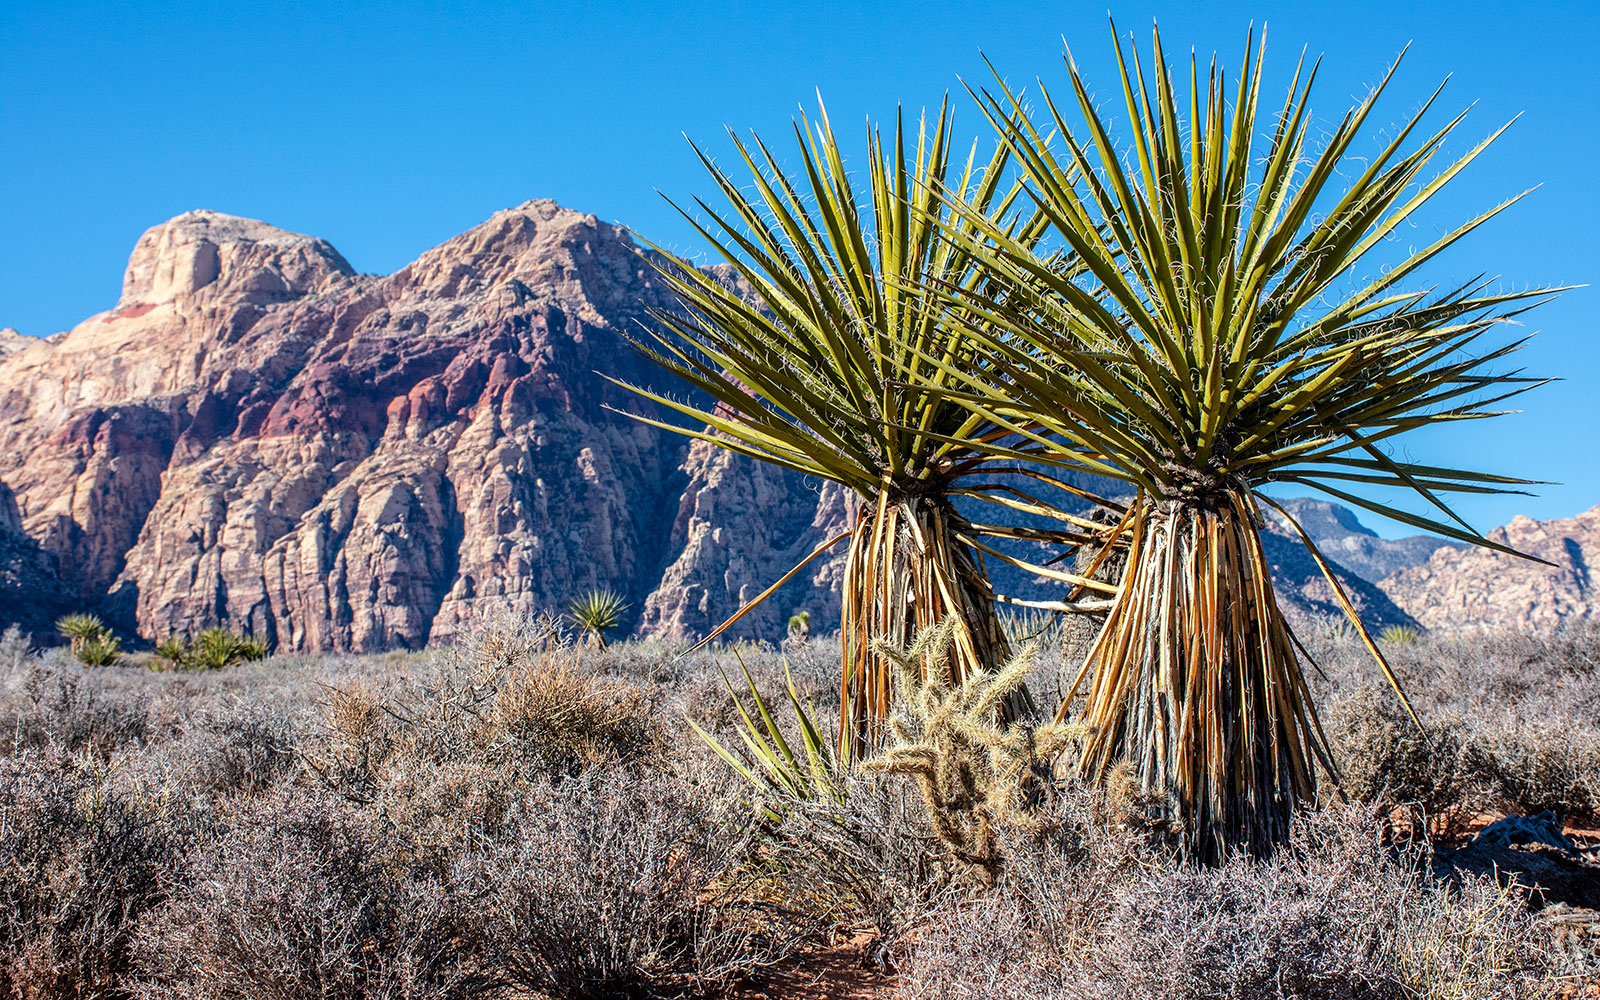 The Red Rocks area outside Las Vegas offers great hiking less than an hour from the casinos on the Strip.